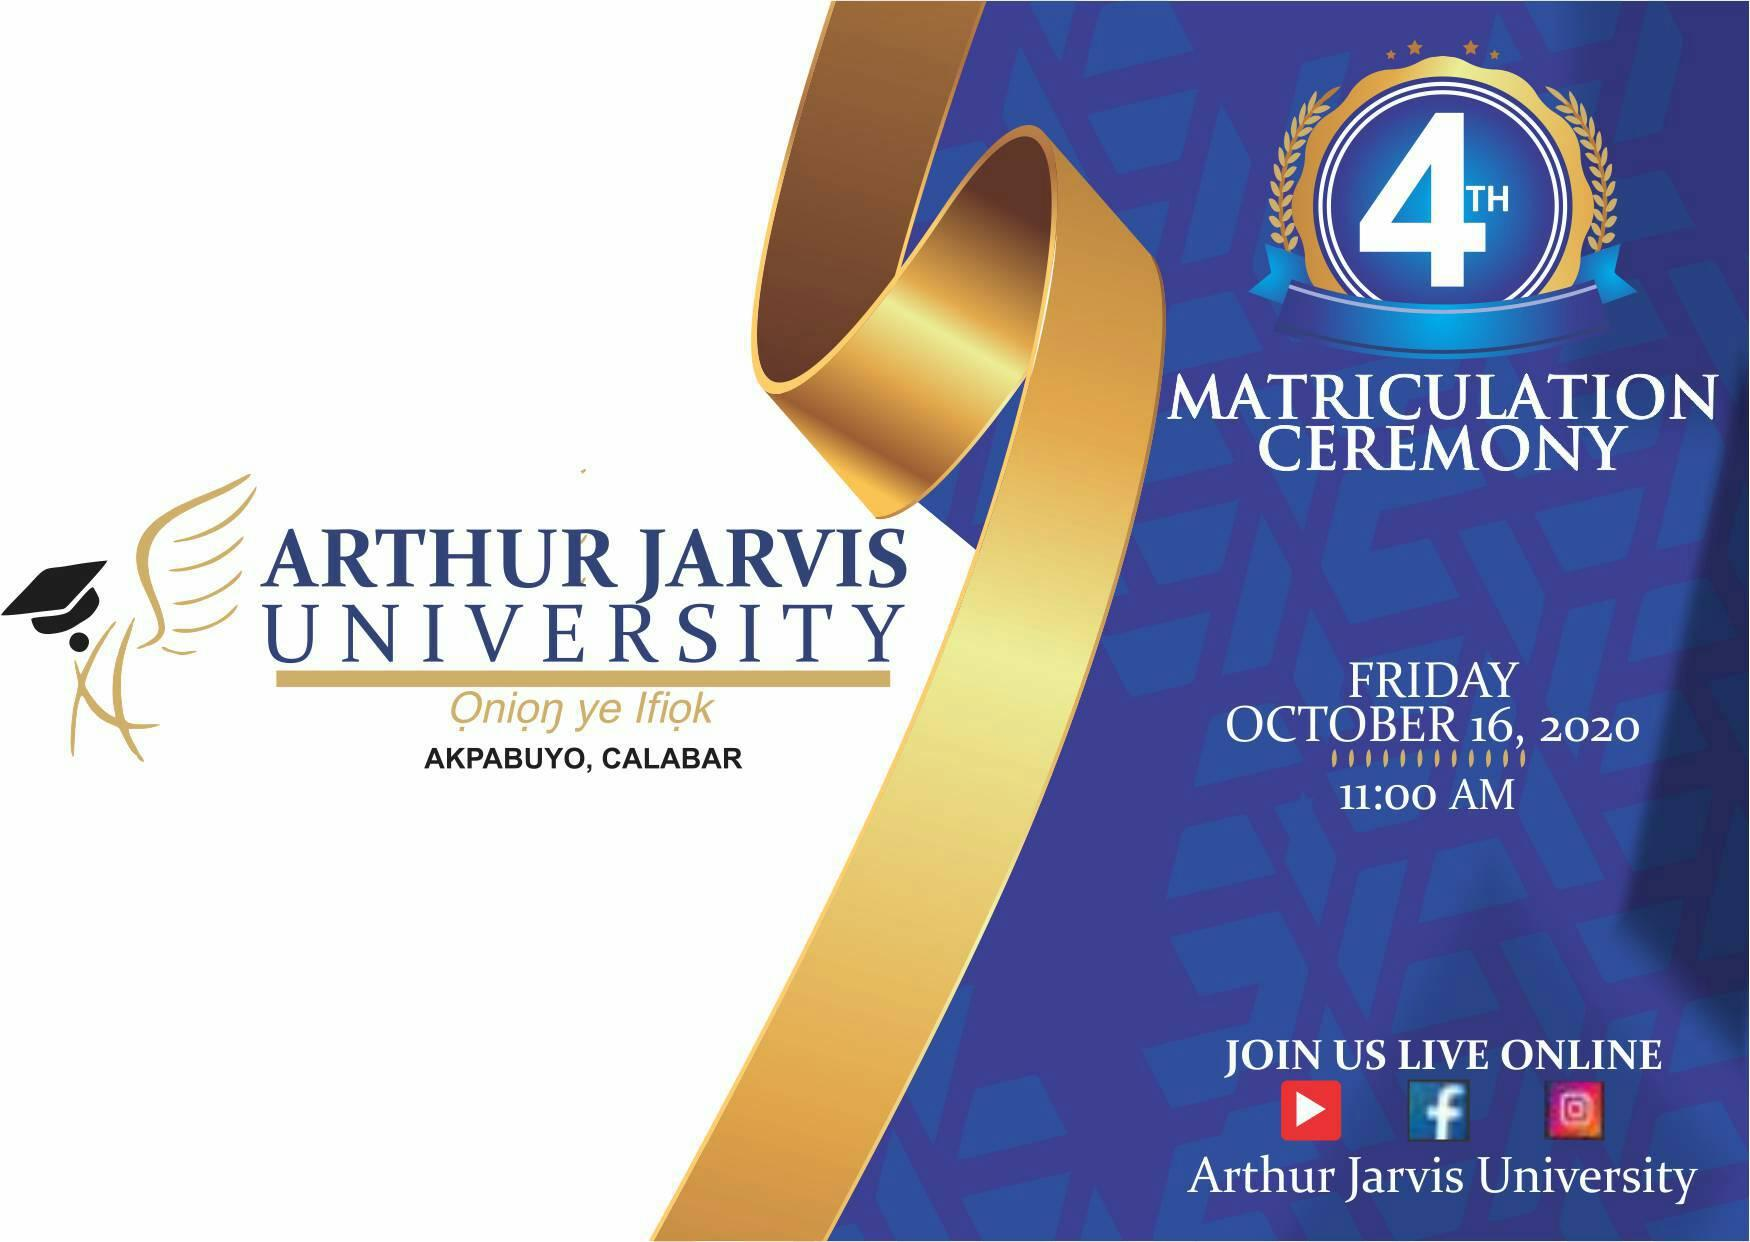 Arthur Jarvis University 4th Matriculation Ceremony Schedule